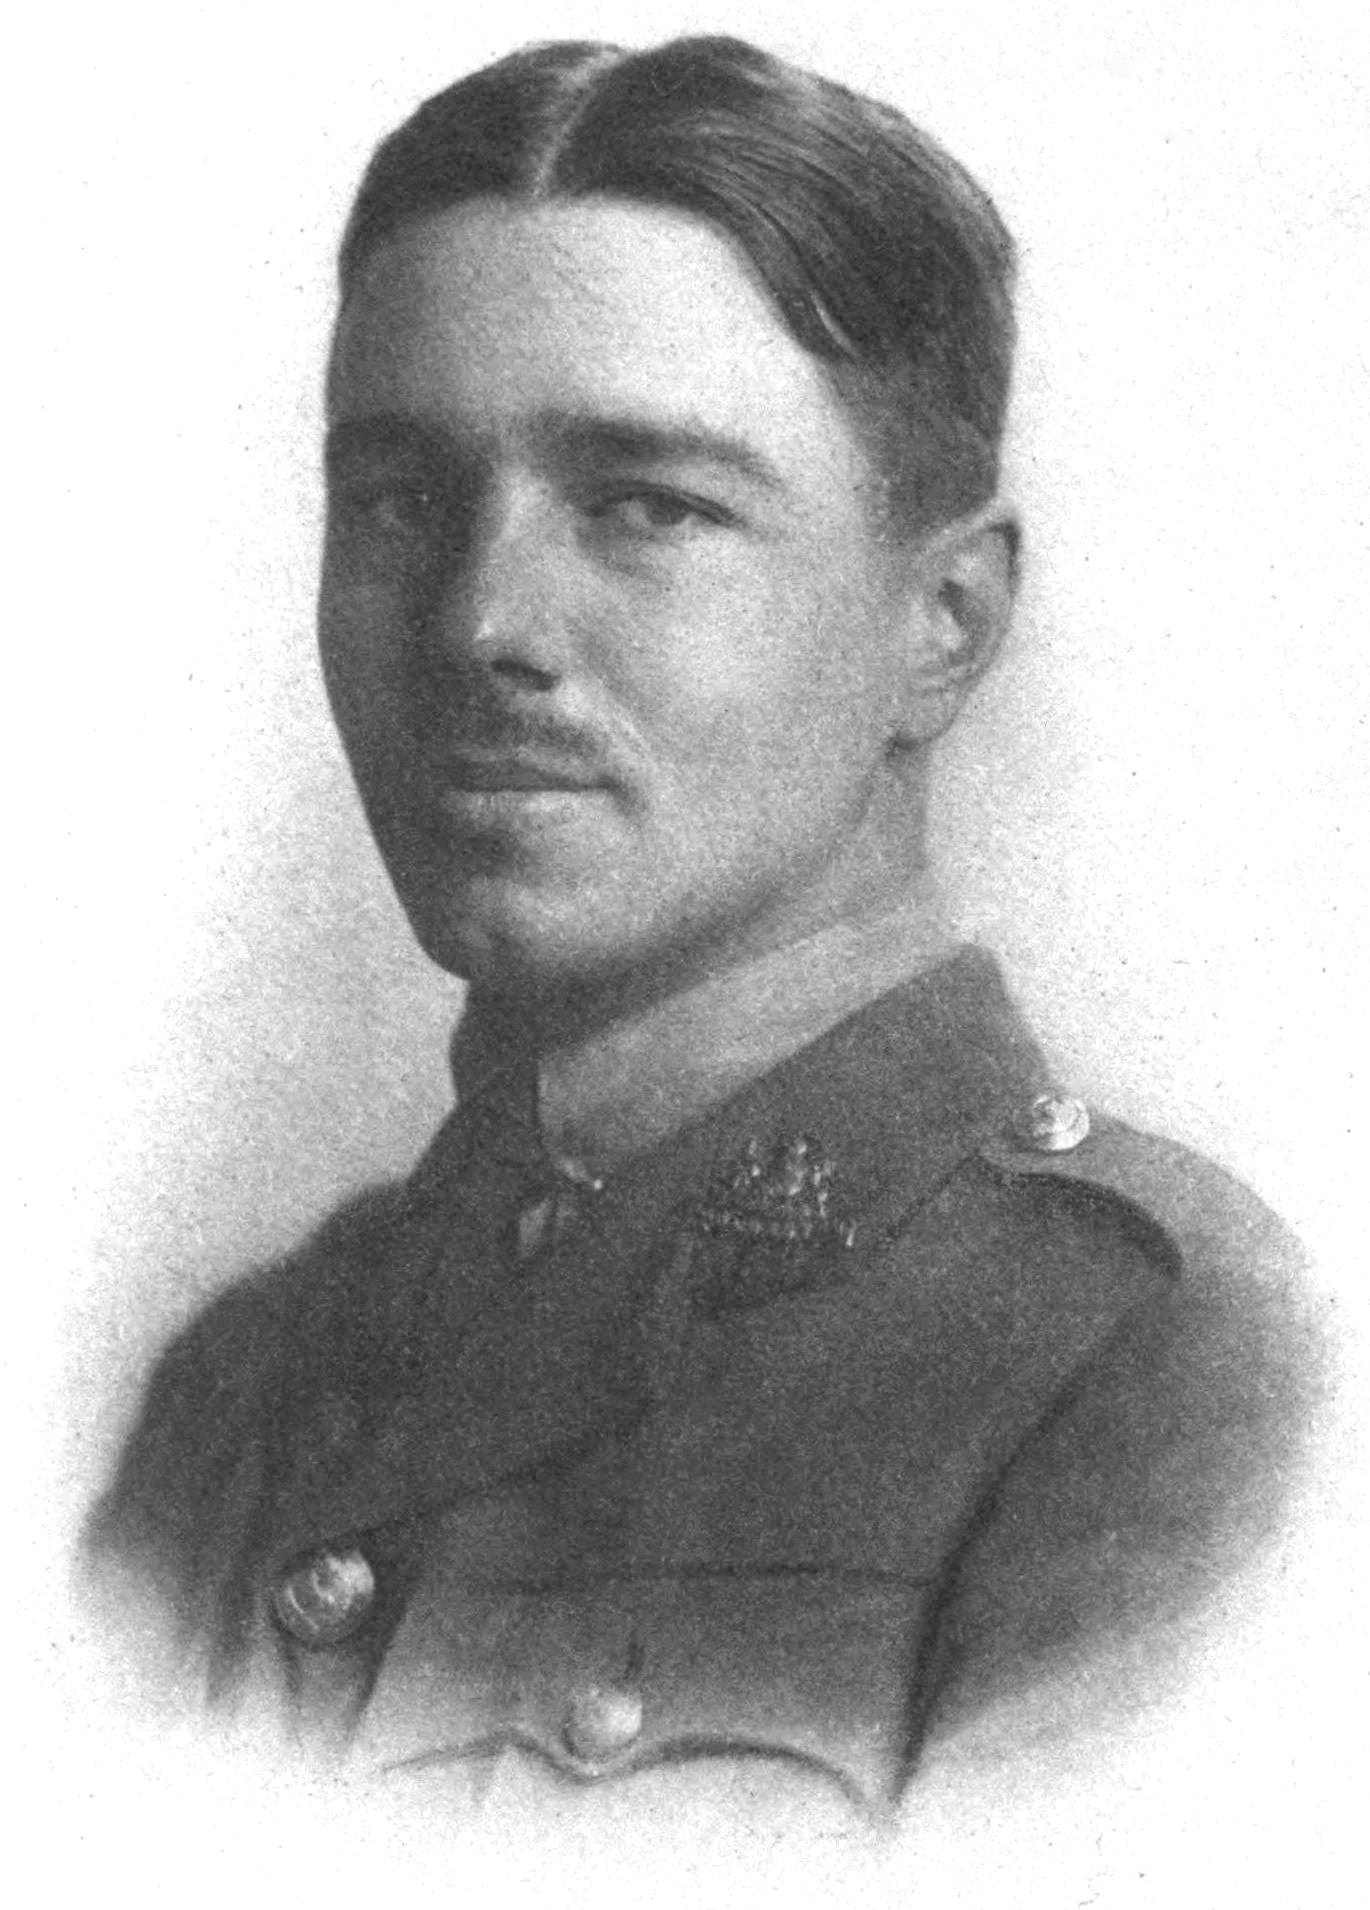 https://i1.wp.com/upload.wikimedia.org/wikipedia/commons/e/e3/Wilfred_Owen_plate_from_Poems_%281920%29.jpg